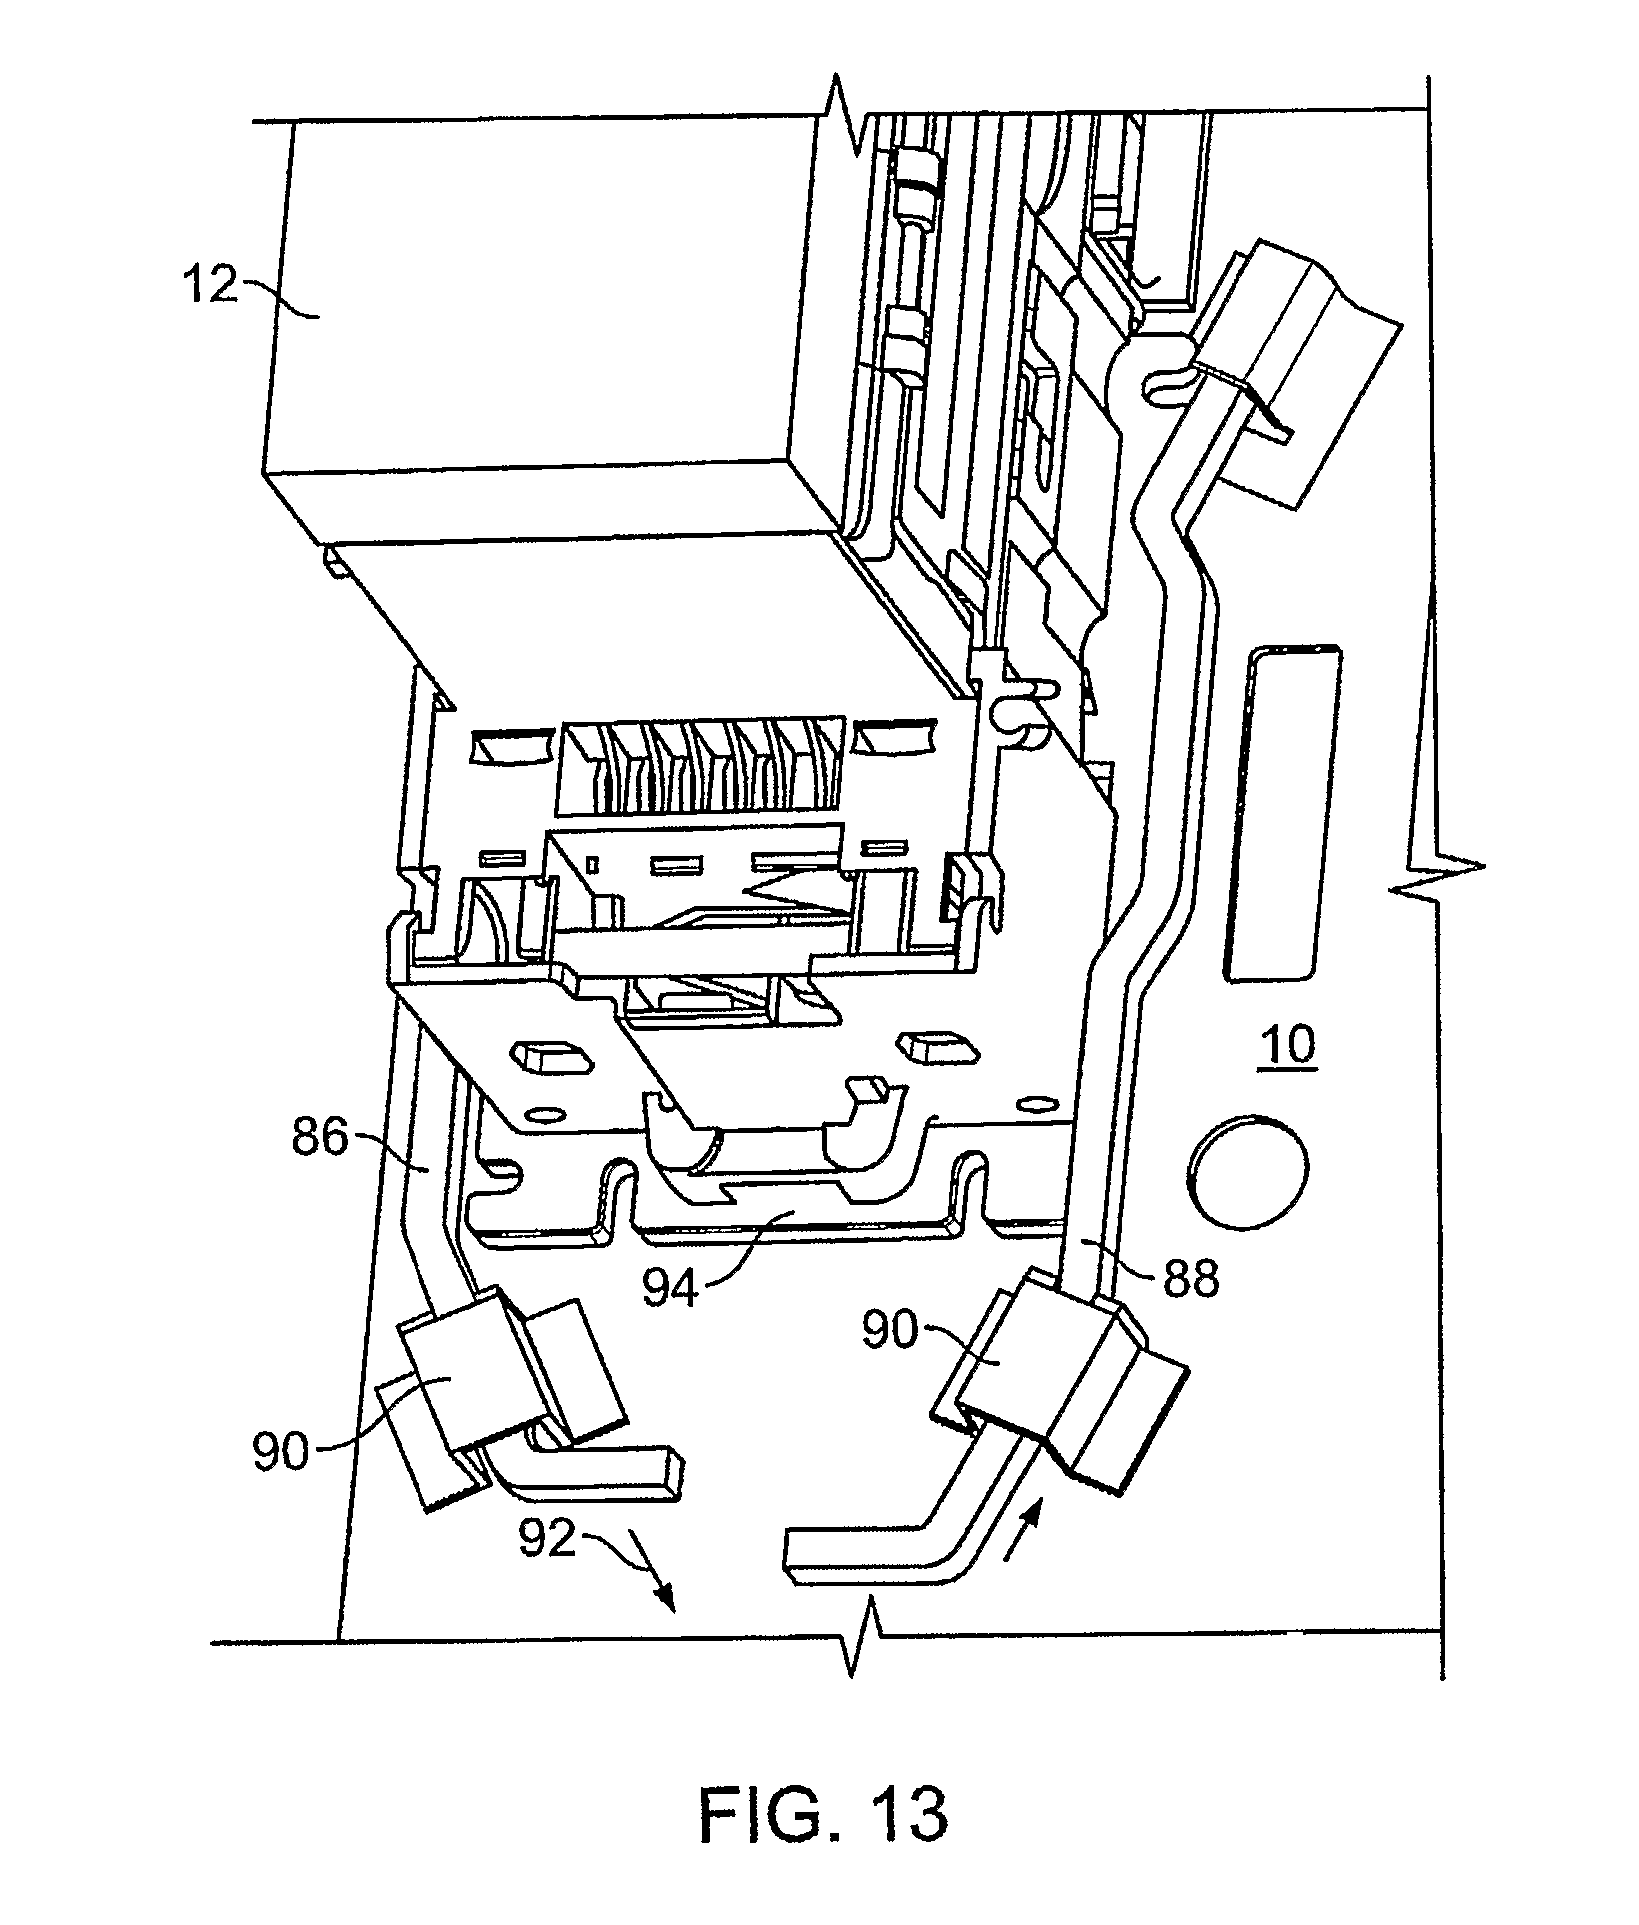 patent us8240451 - techniques for mounting a peripheral device in a vending machine